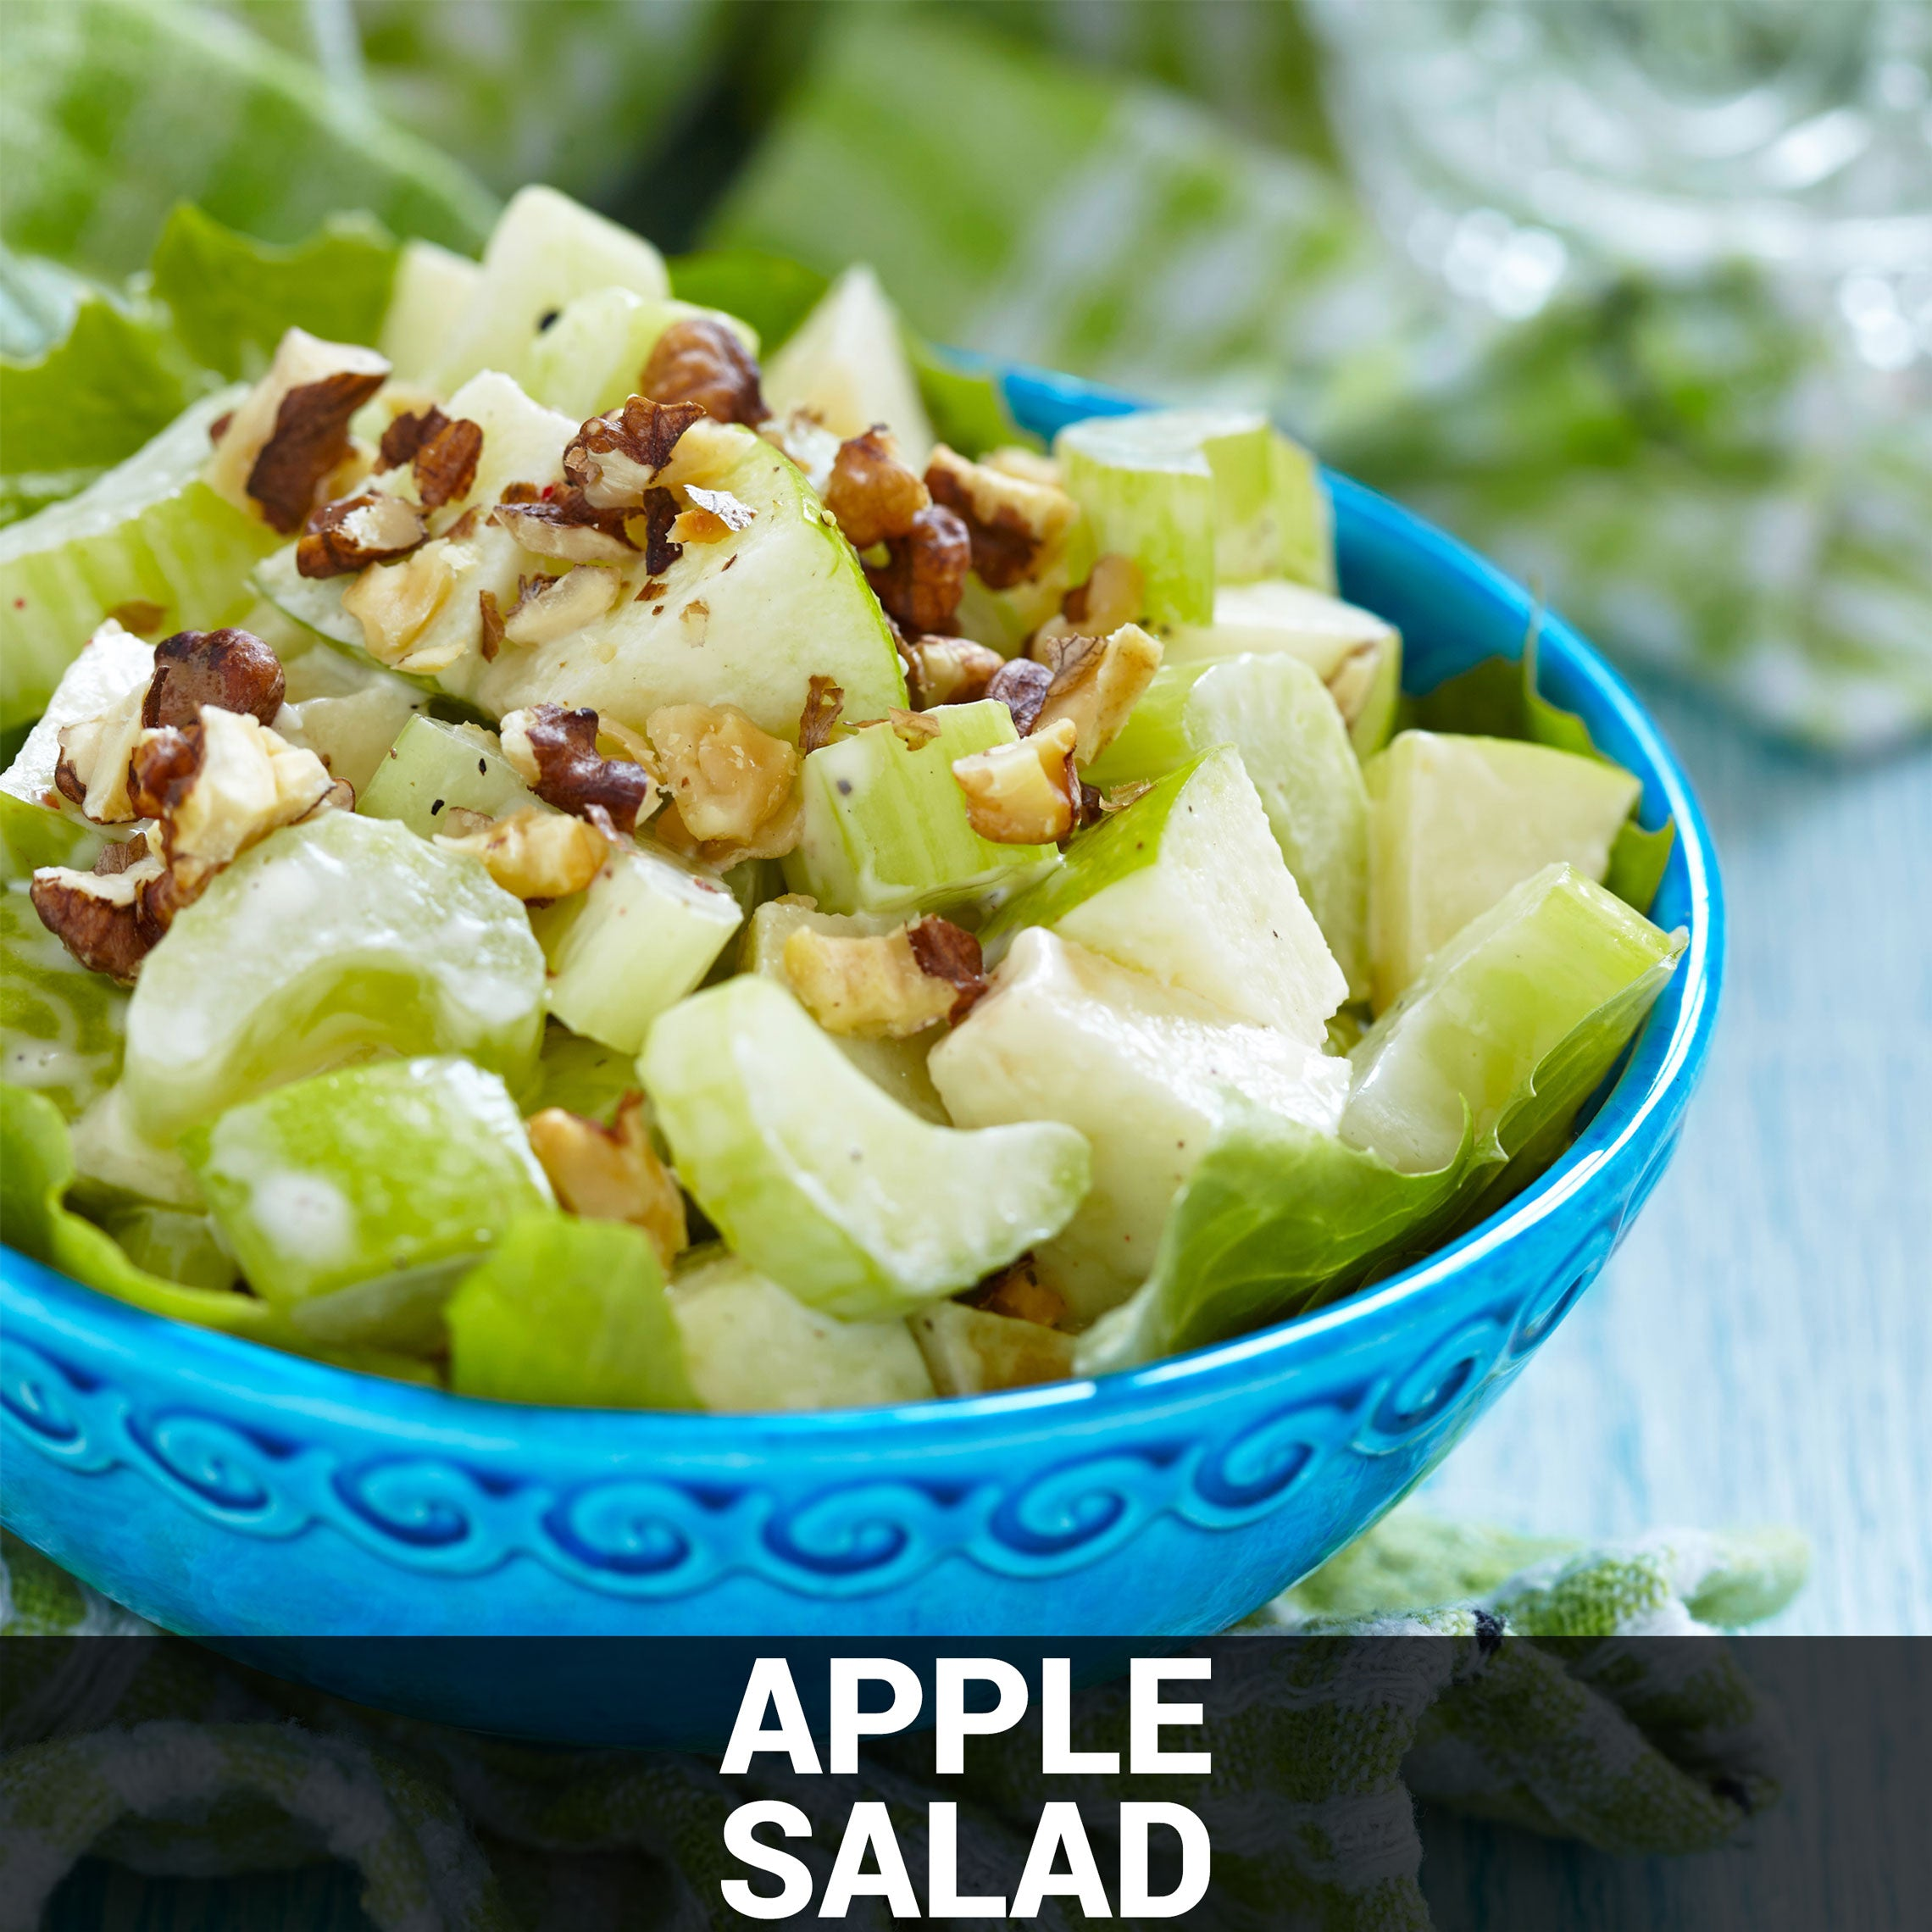 Apple Salad Recipe - Foods Alive